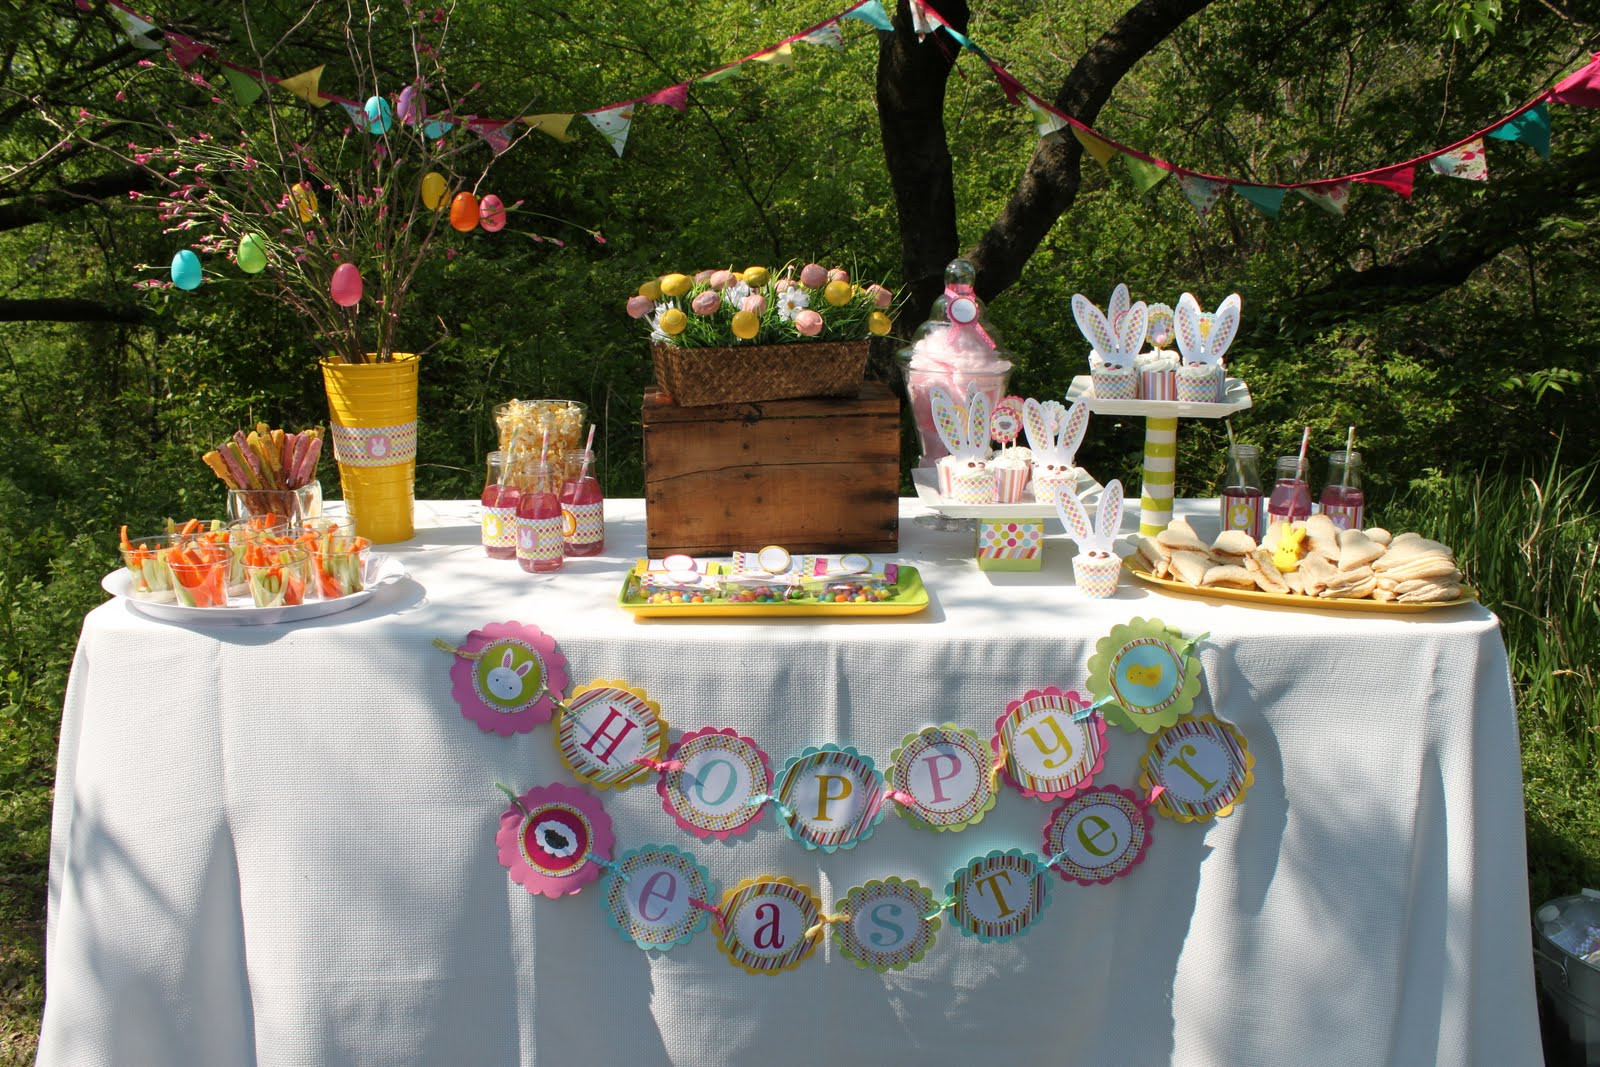 Best ideas about Easter Birthday Party . Save or Pin Easter Egg Hunt Party Now.